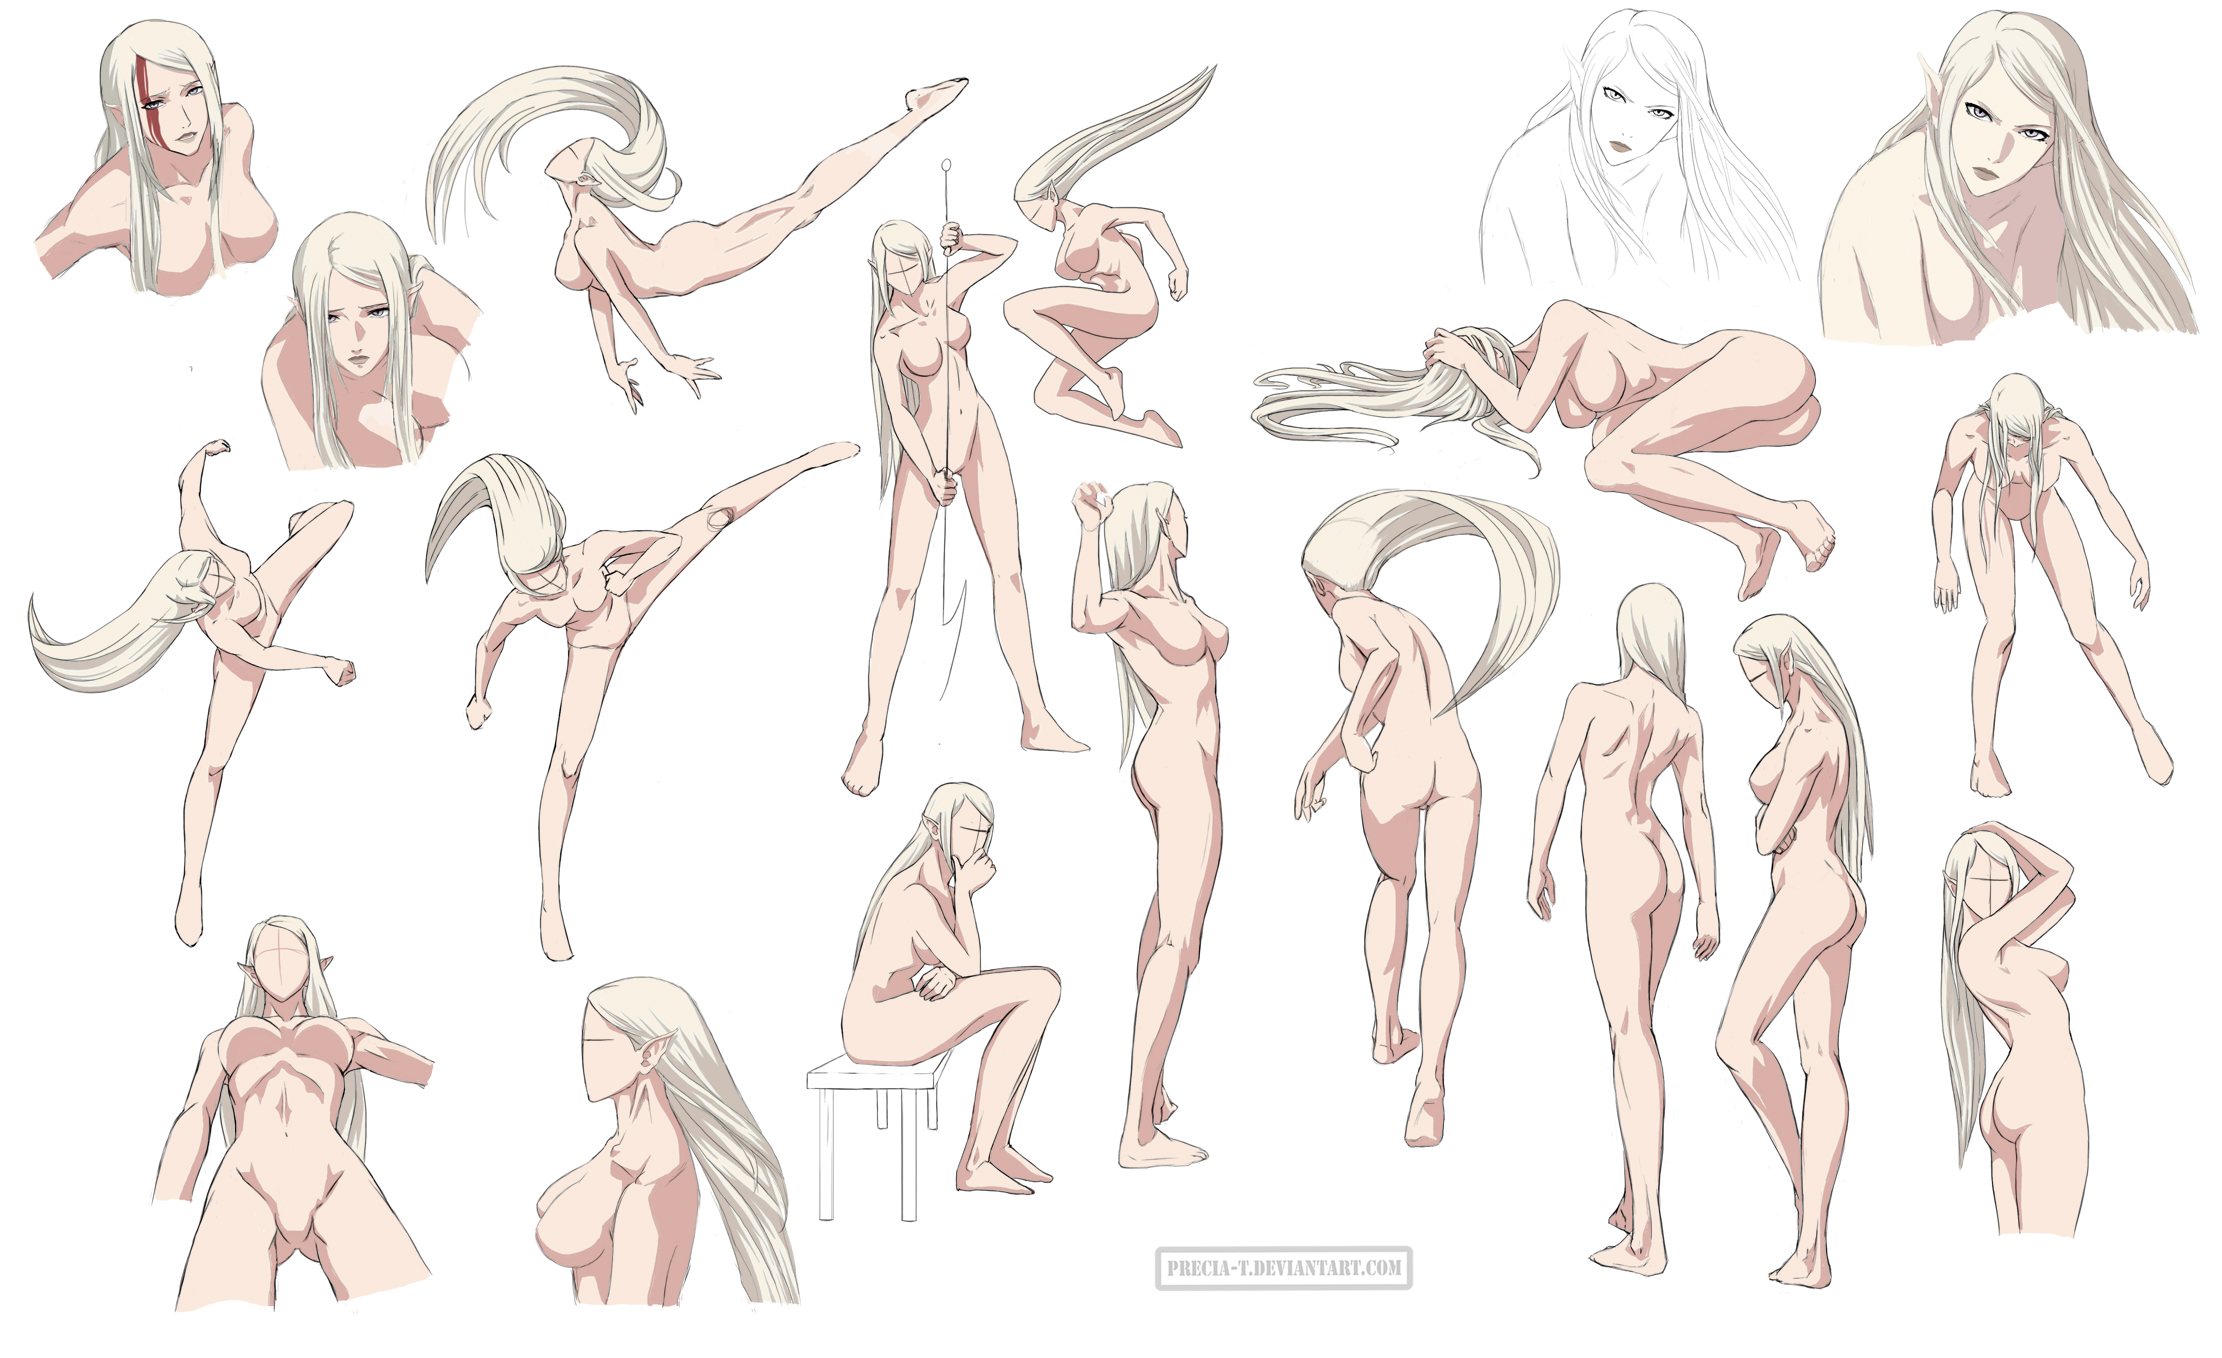 Female Body Reference Drawing At Getdrawings Free For Personal